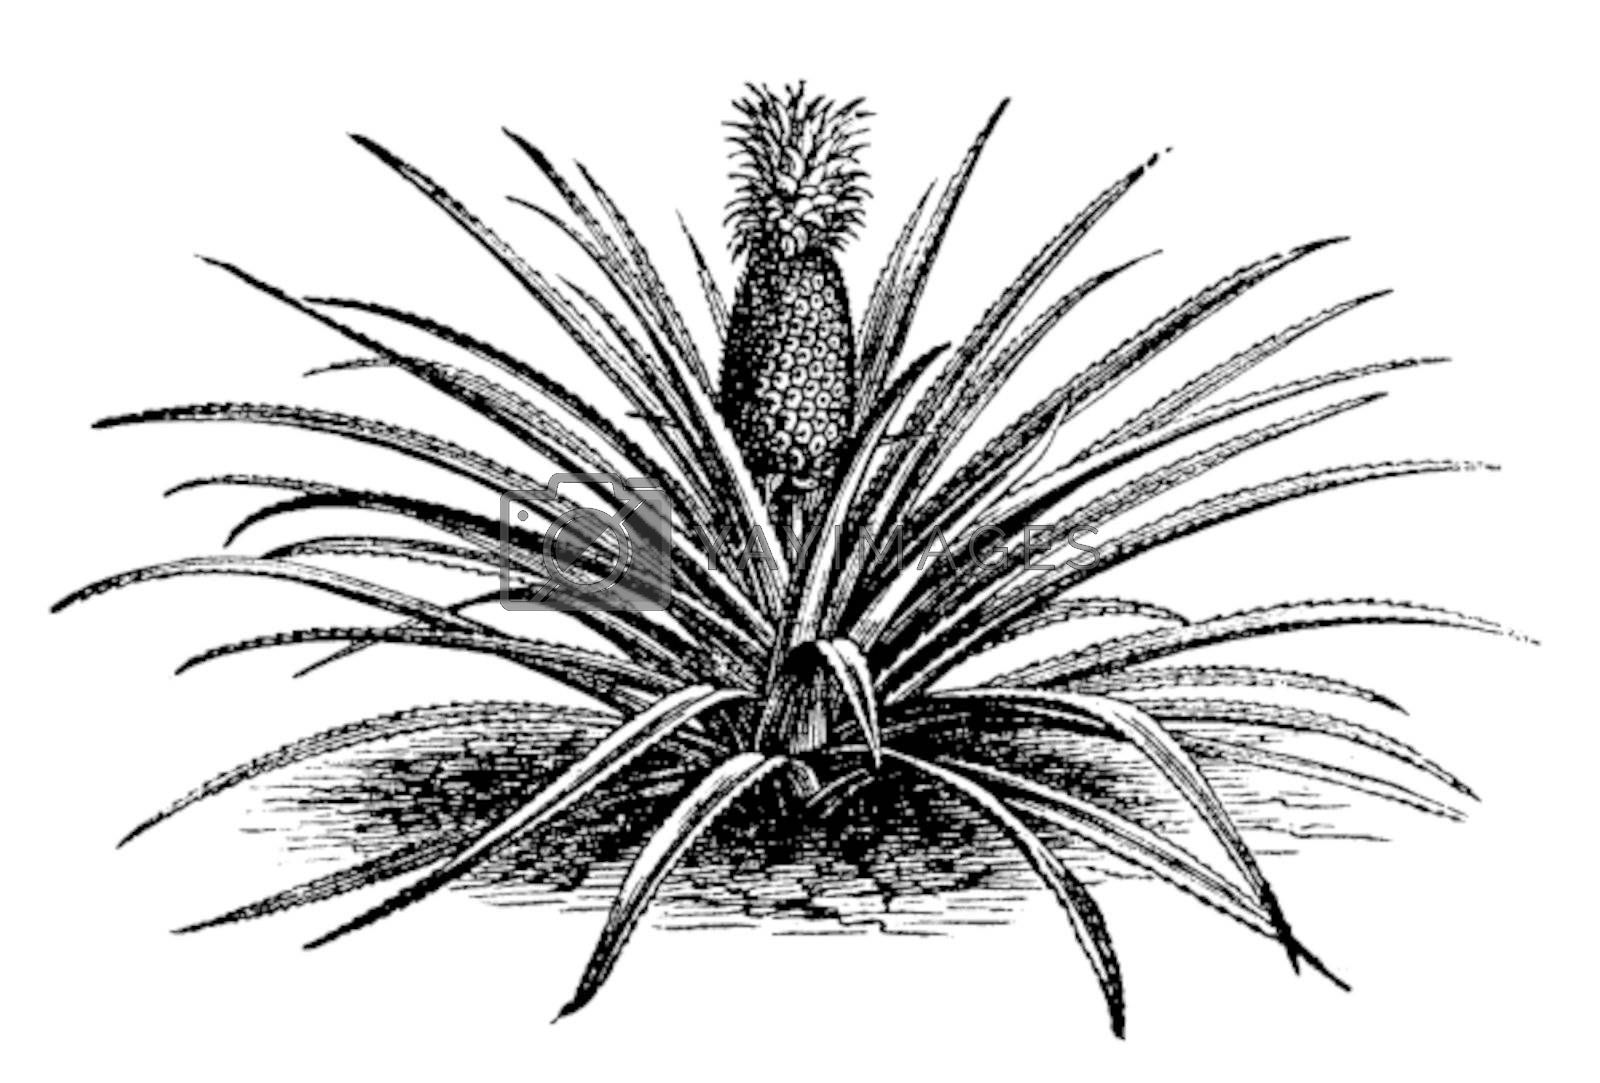 Pineapple, ananassa sativa or ananas comosus old vintage engraving. Full pineapple plant with stems, in vector, engraved illustration.